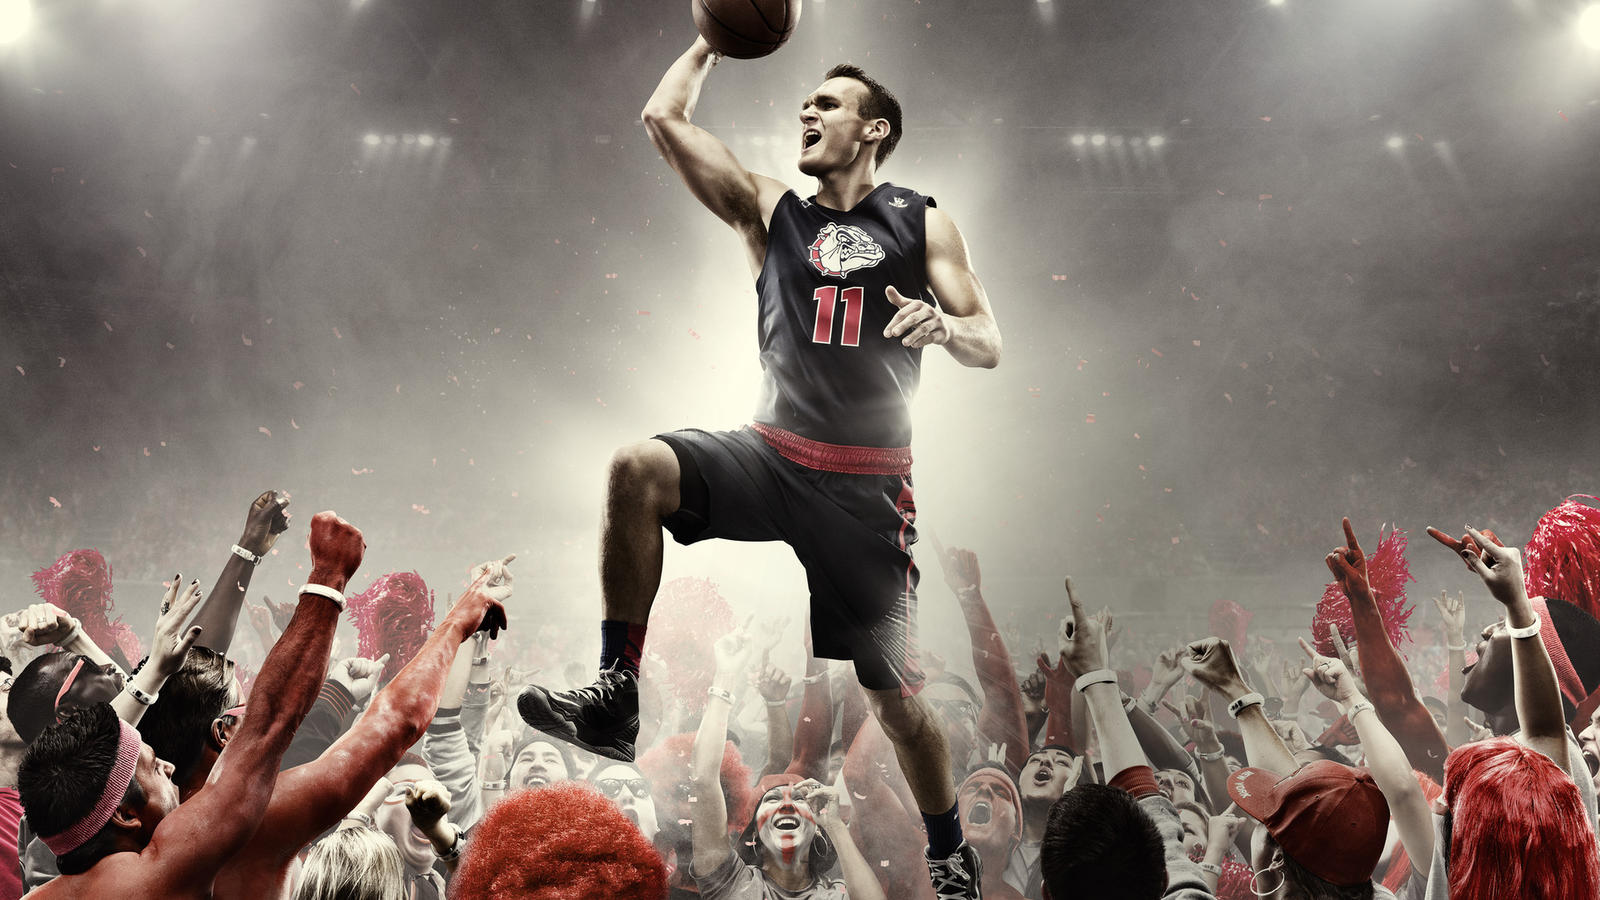 sp13_marchmadness_gonzaga_final_typeplacement